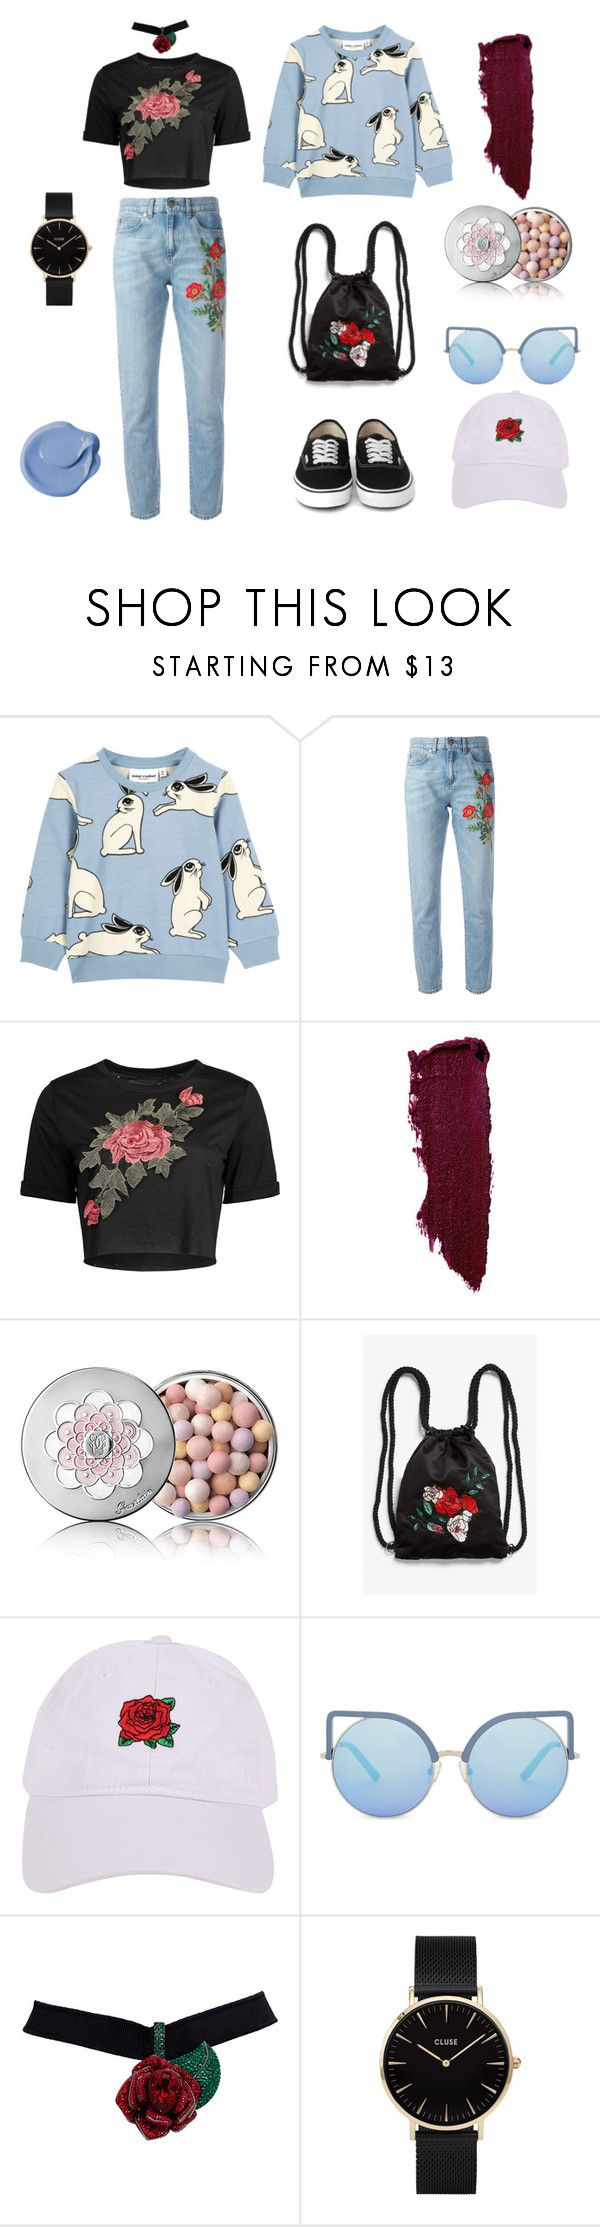 """BUNNY SET - ROSE & JEANS"" by sweetlittlebunny on Polyvore featuring moda, Gucci, Guerlain, Monki, Armitage Avenue, Matthew Williamson i CLUSE"